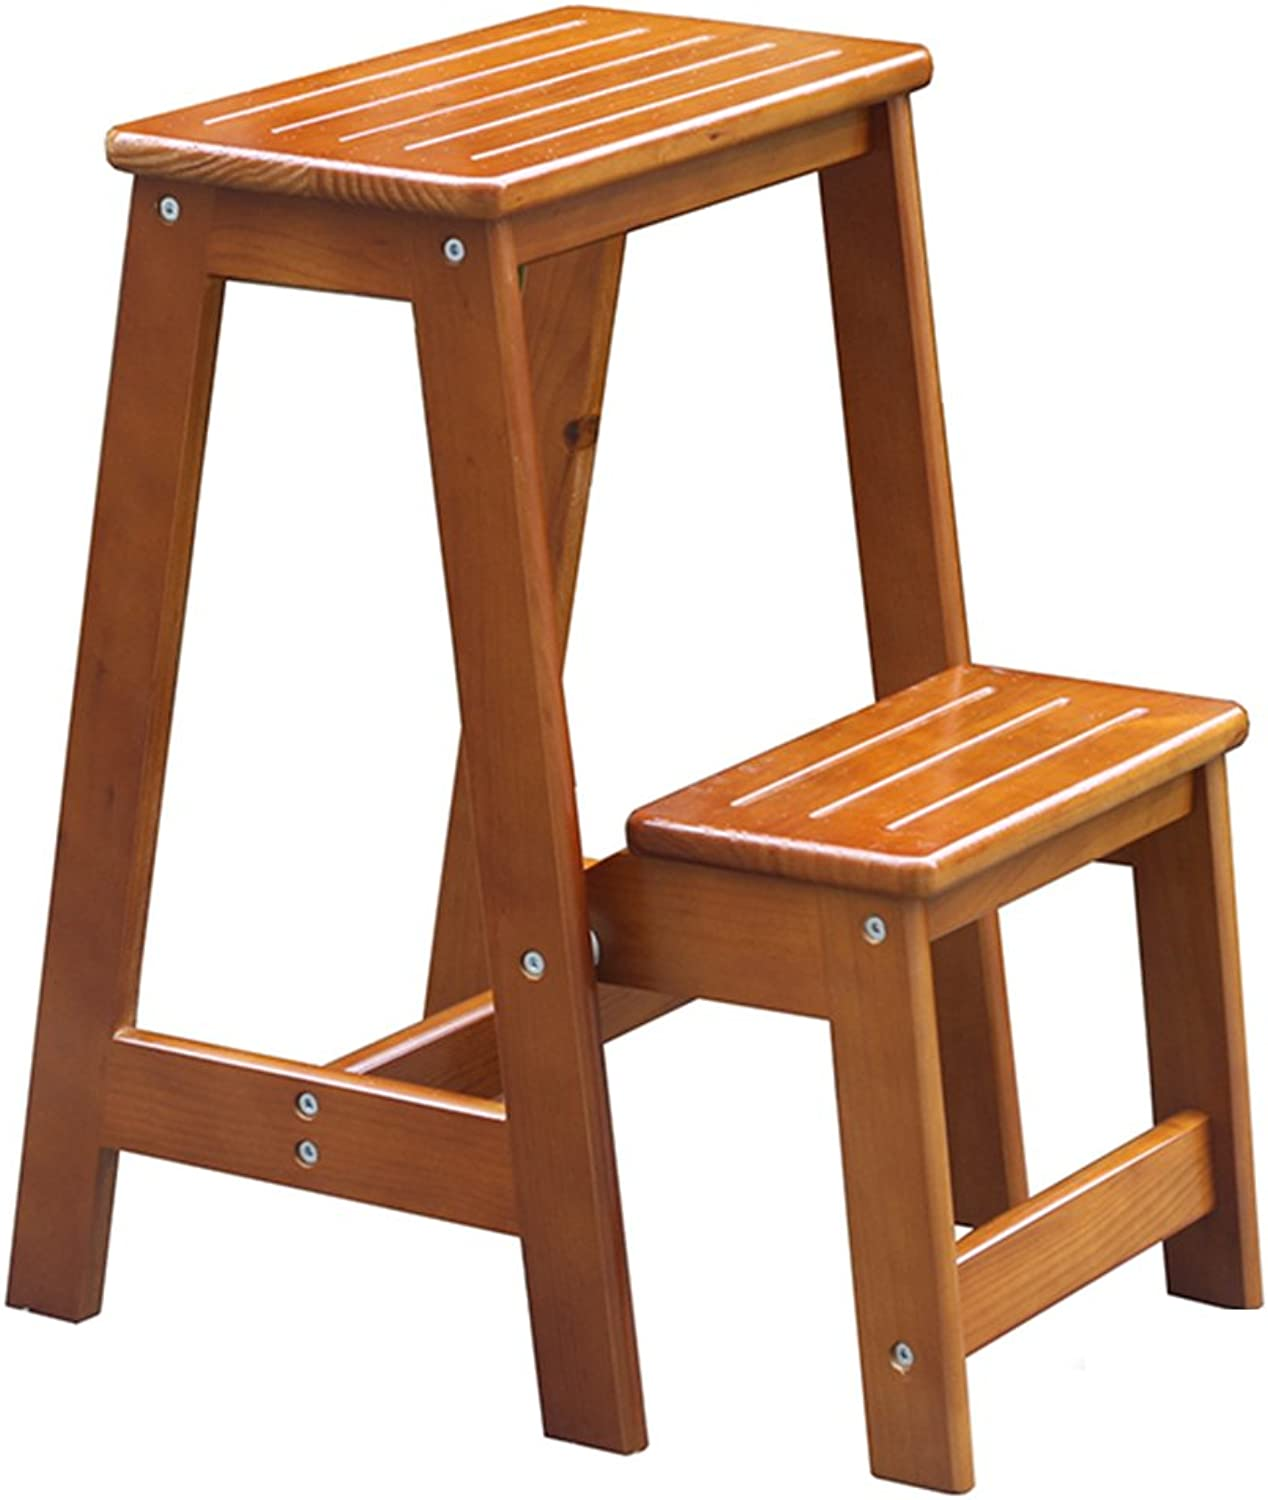 QTPL Dual-use Pine Wood Ladder Stool 2 Step Non-Slip Tread Step Stepladder Stool Changing shoes Stool Foldable Climb High Ladder Home Garden & Kitchen Tool Staircase Stool